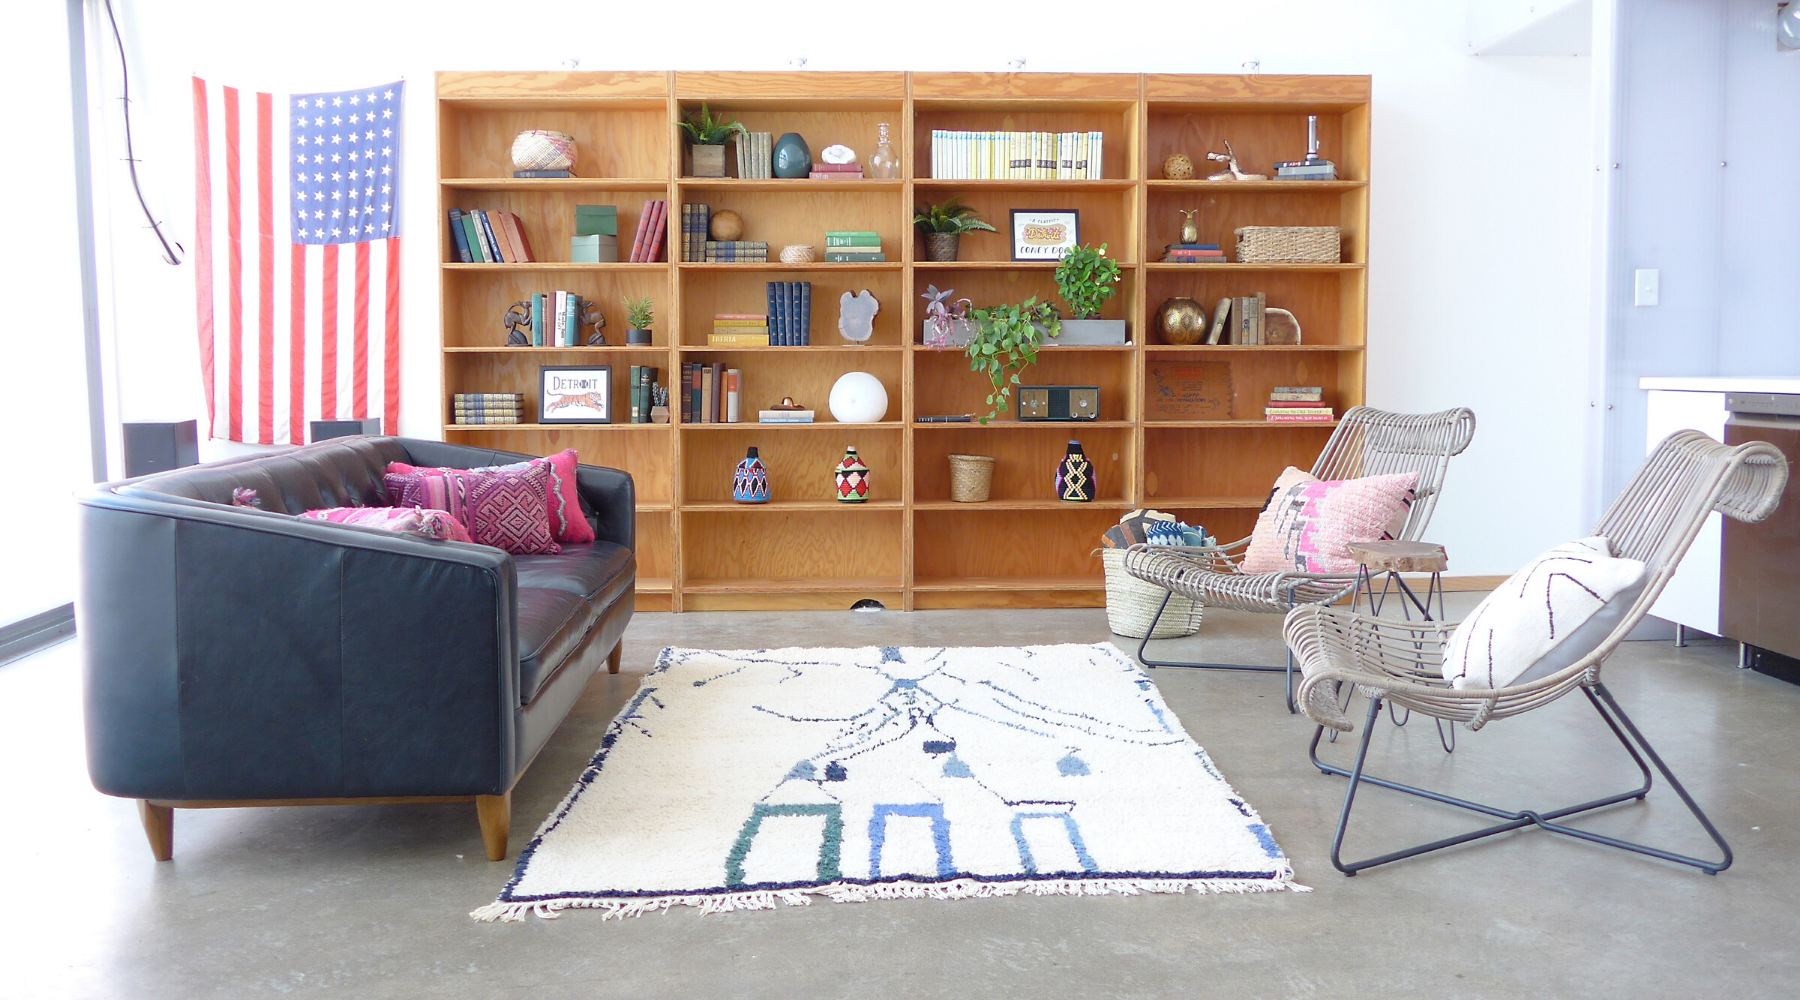 How to Create a Moroccan-Style Living Room